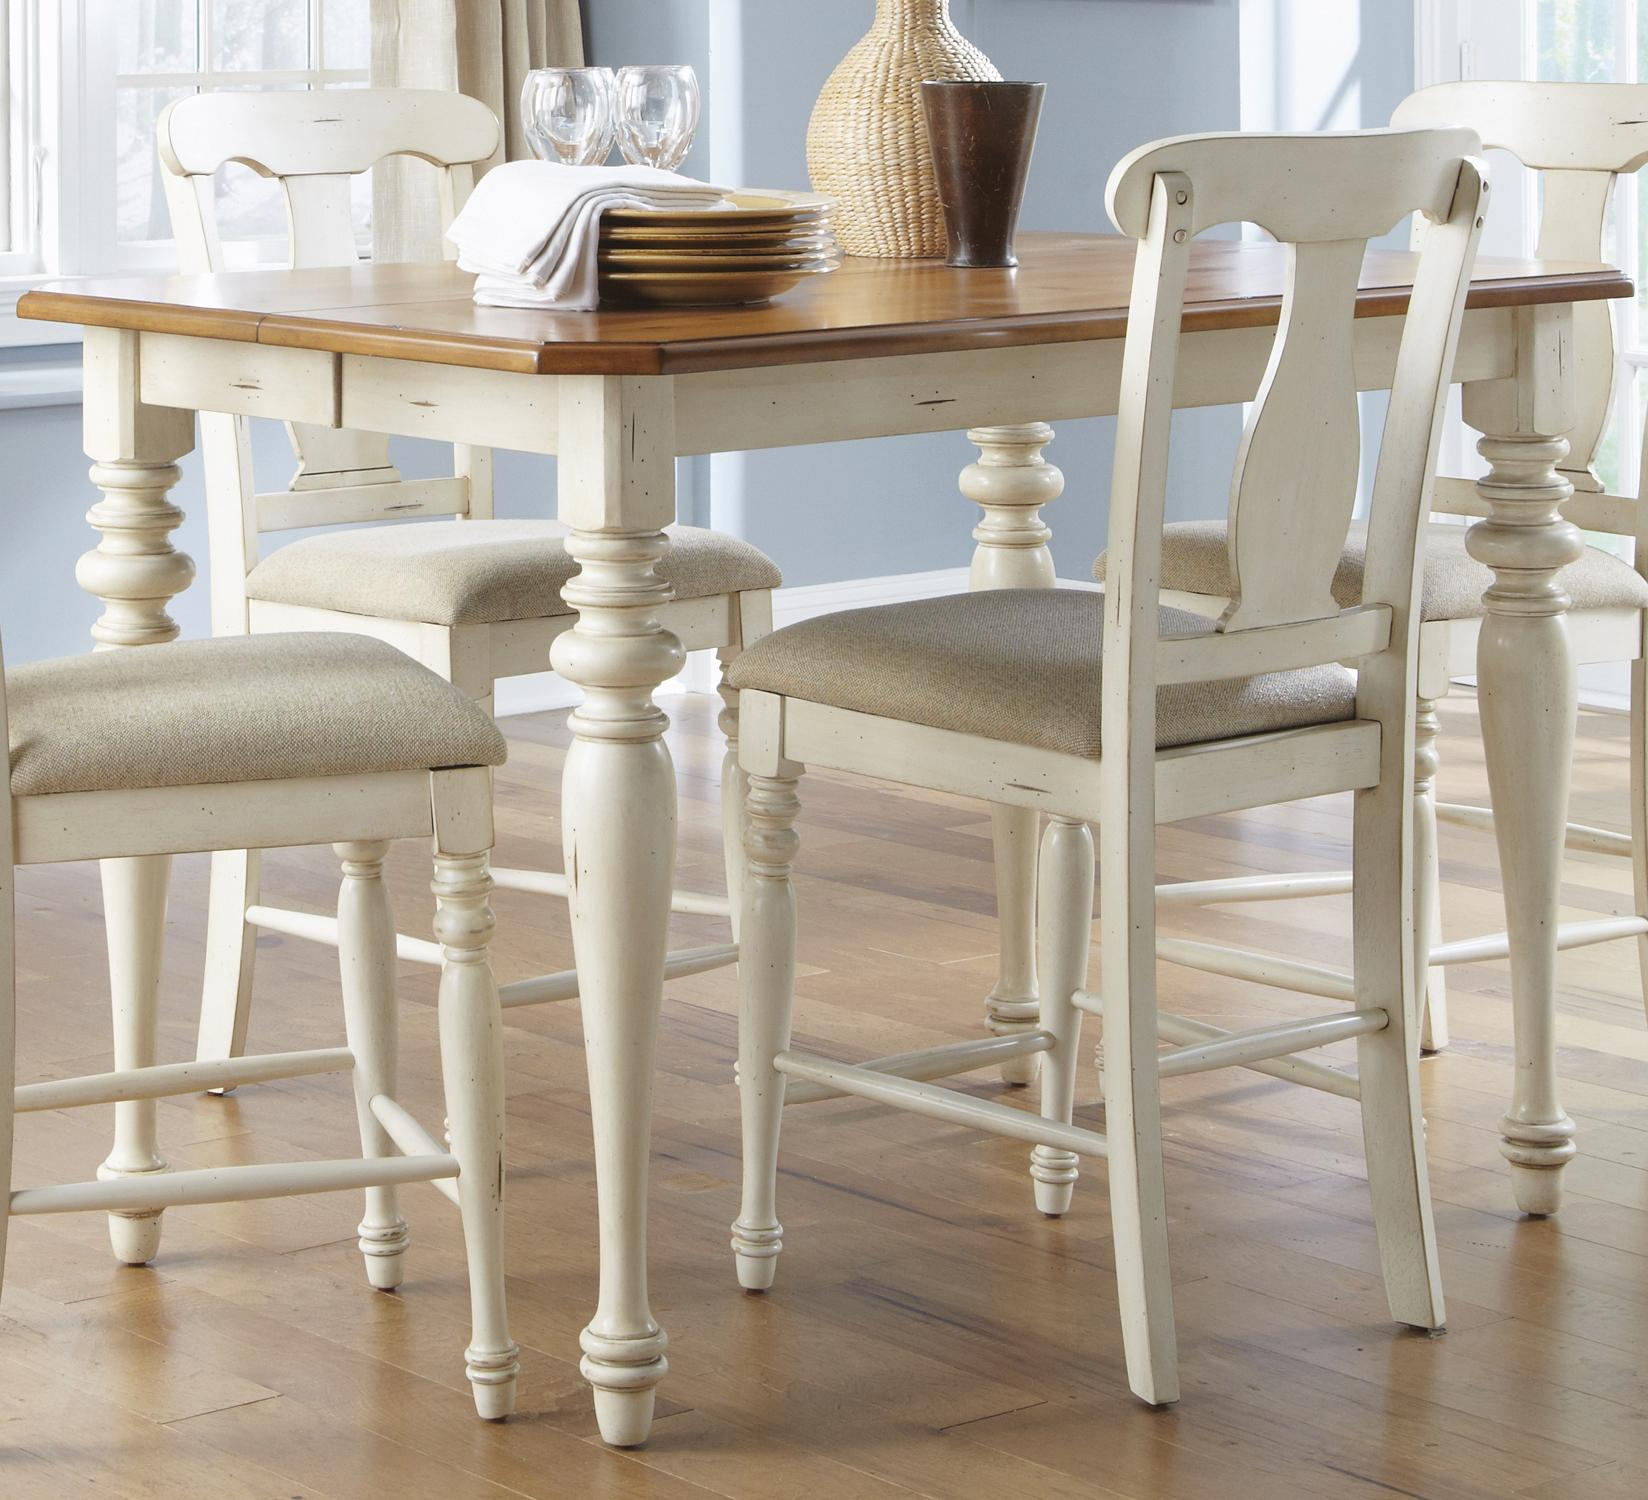 pub height chairs wooden high chair for sale liberty furniture ocean isle 303 g5454 gathering